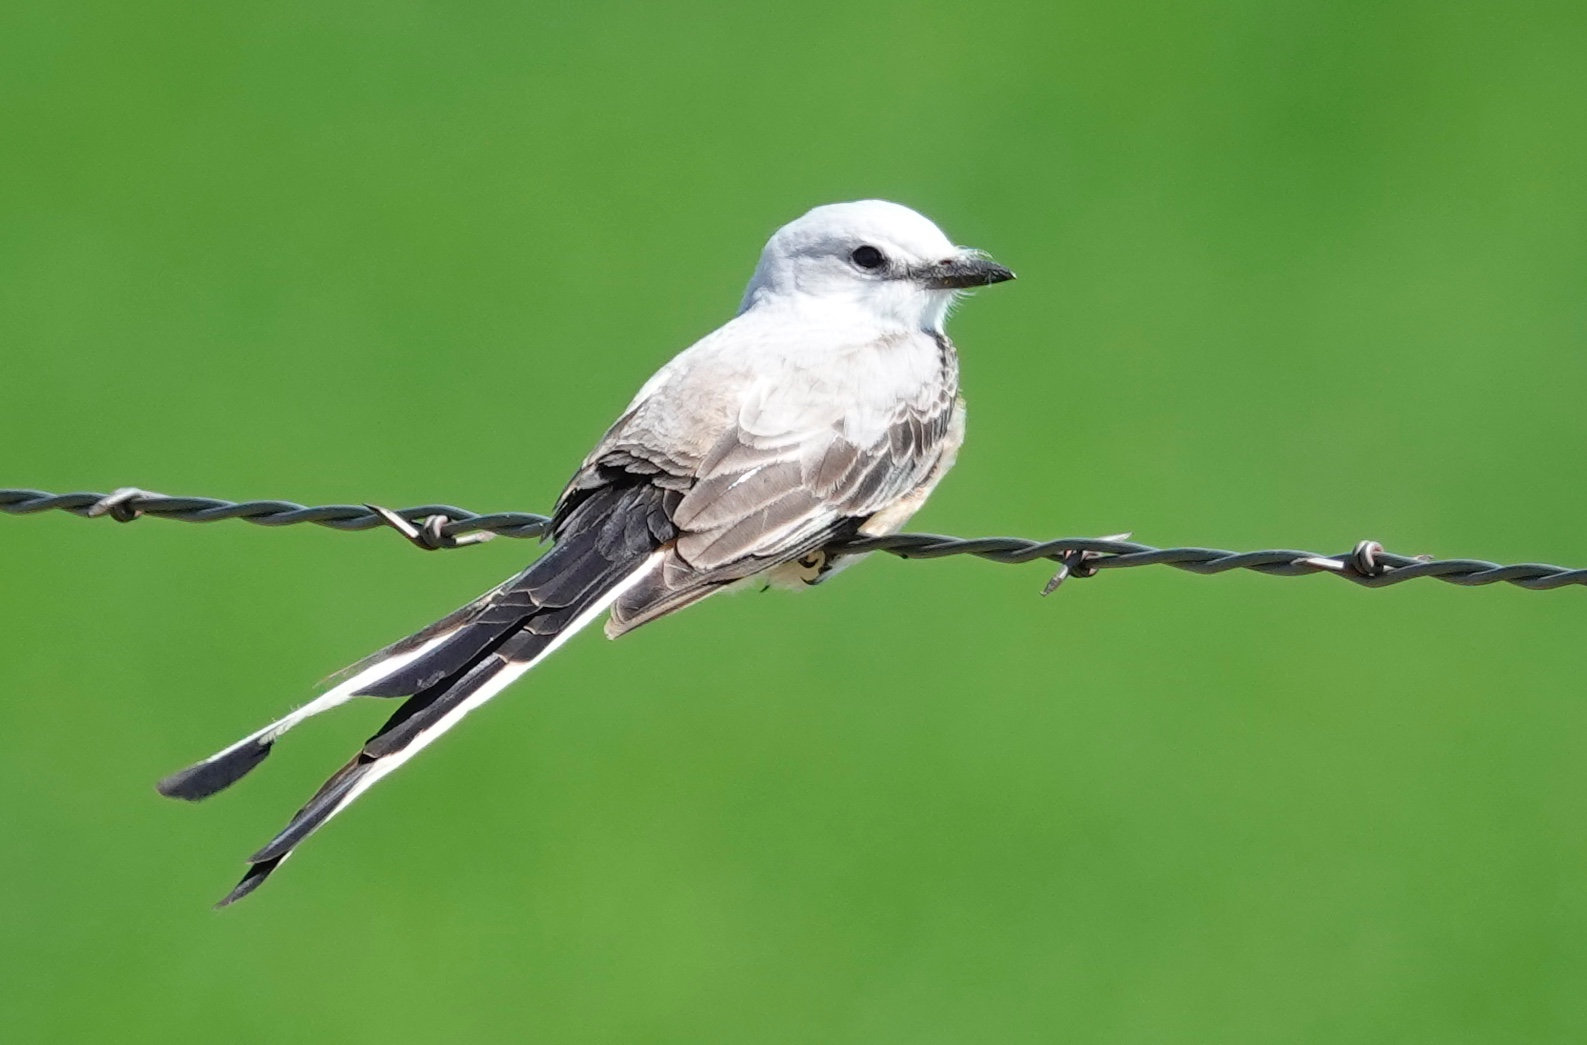 Whenever I see a scissor-tailed flycatcher, I feel like a lucky man.